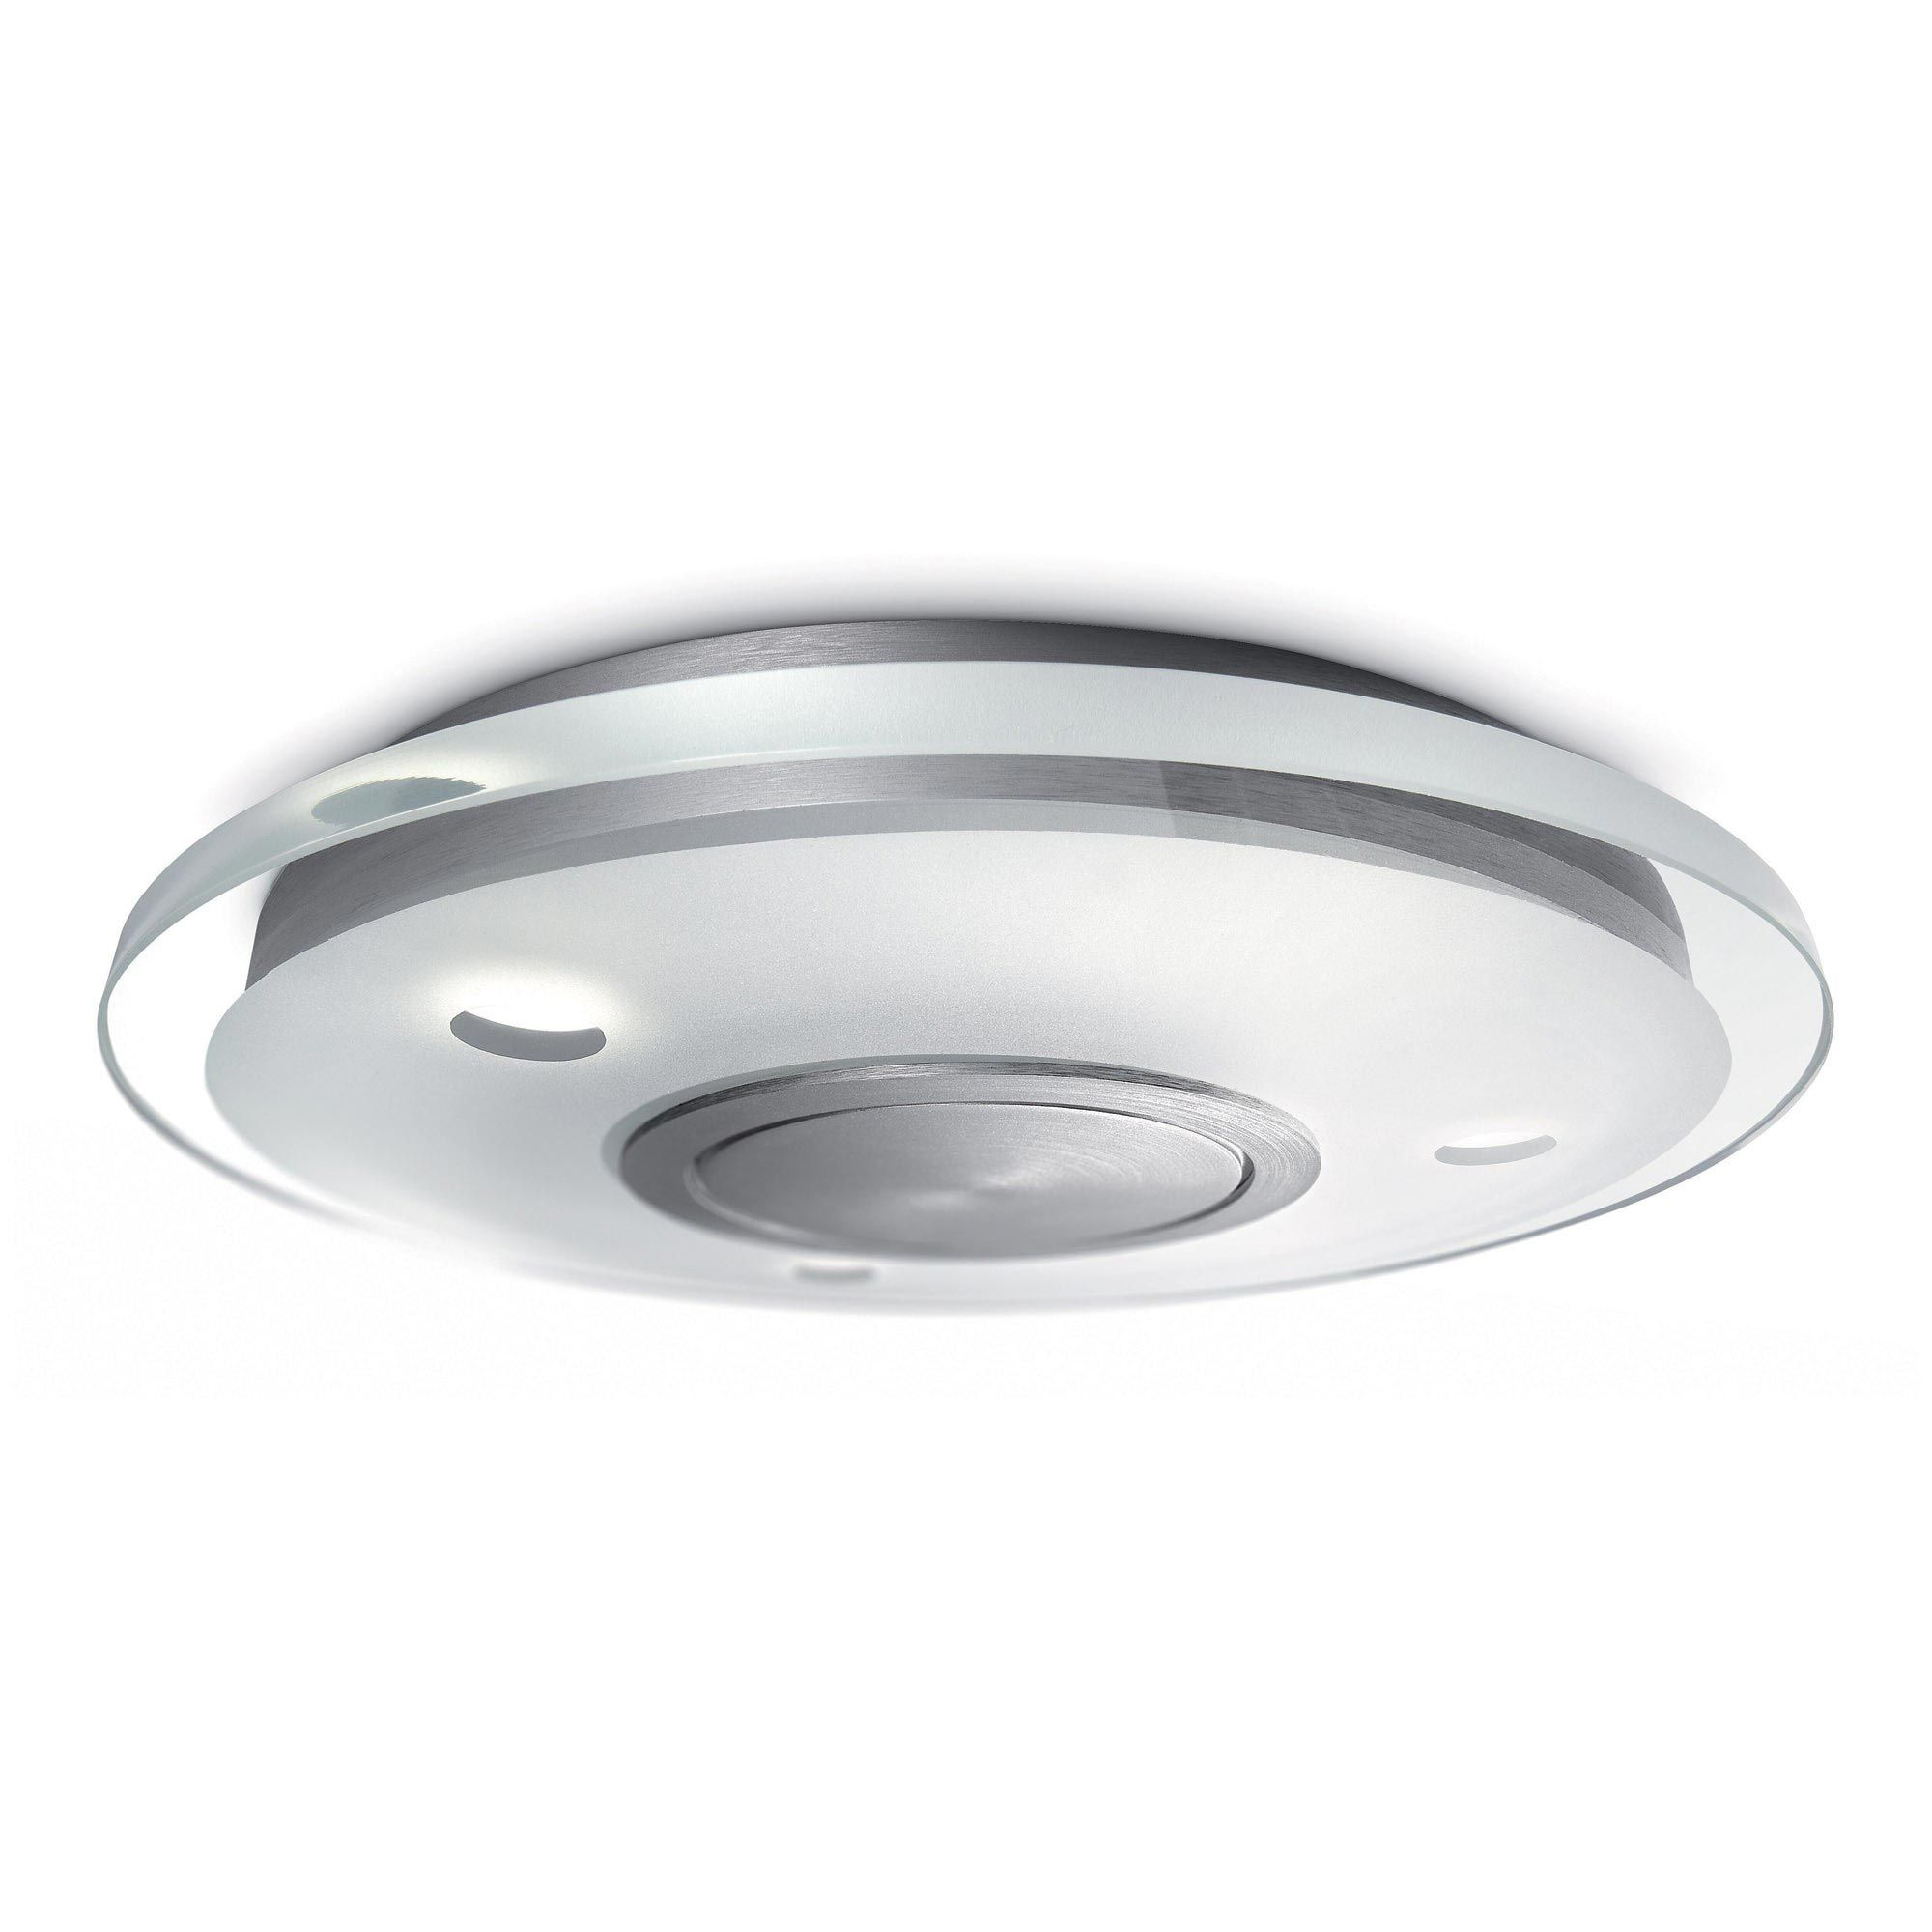 Find This Pin And More On Bathroom Design 2017 2018 The Philips Ceiling Light